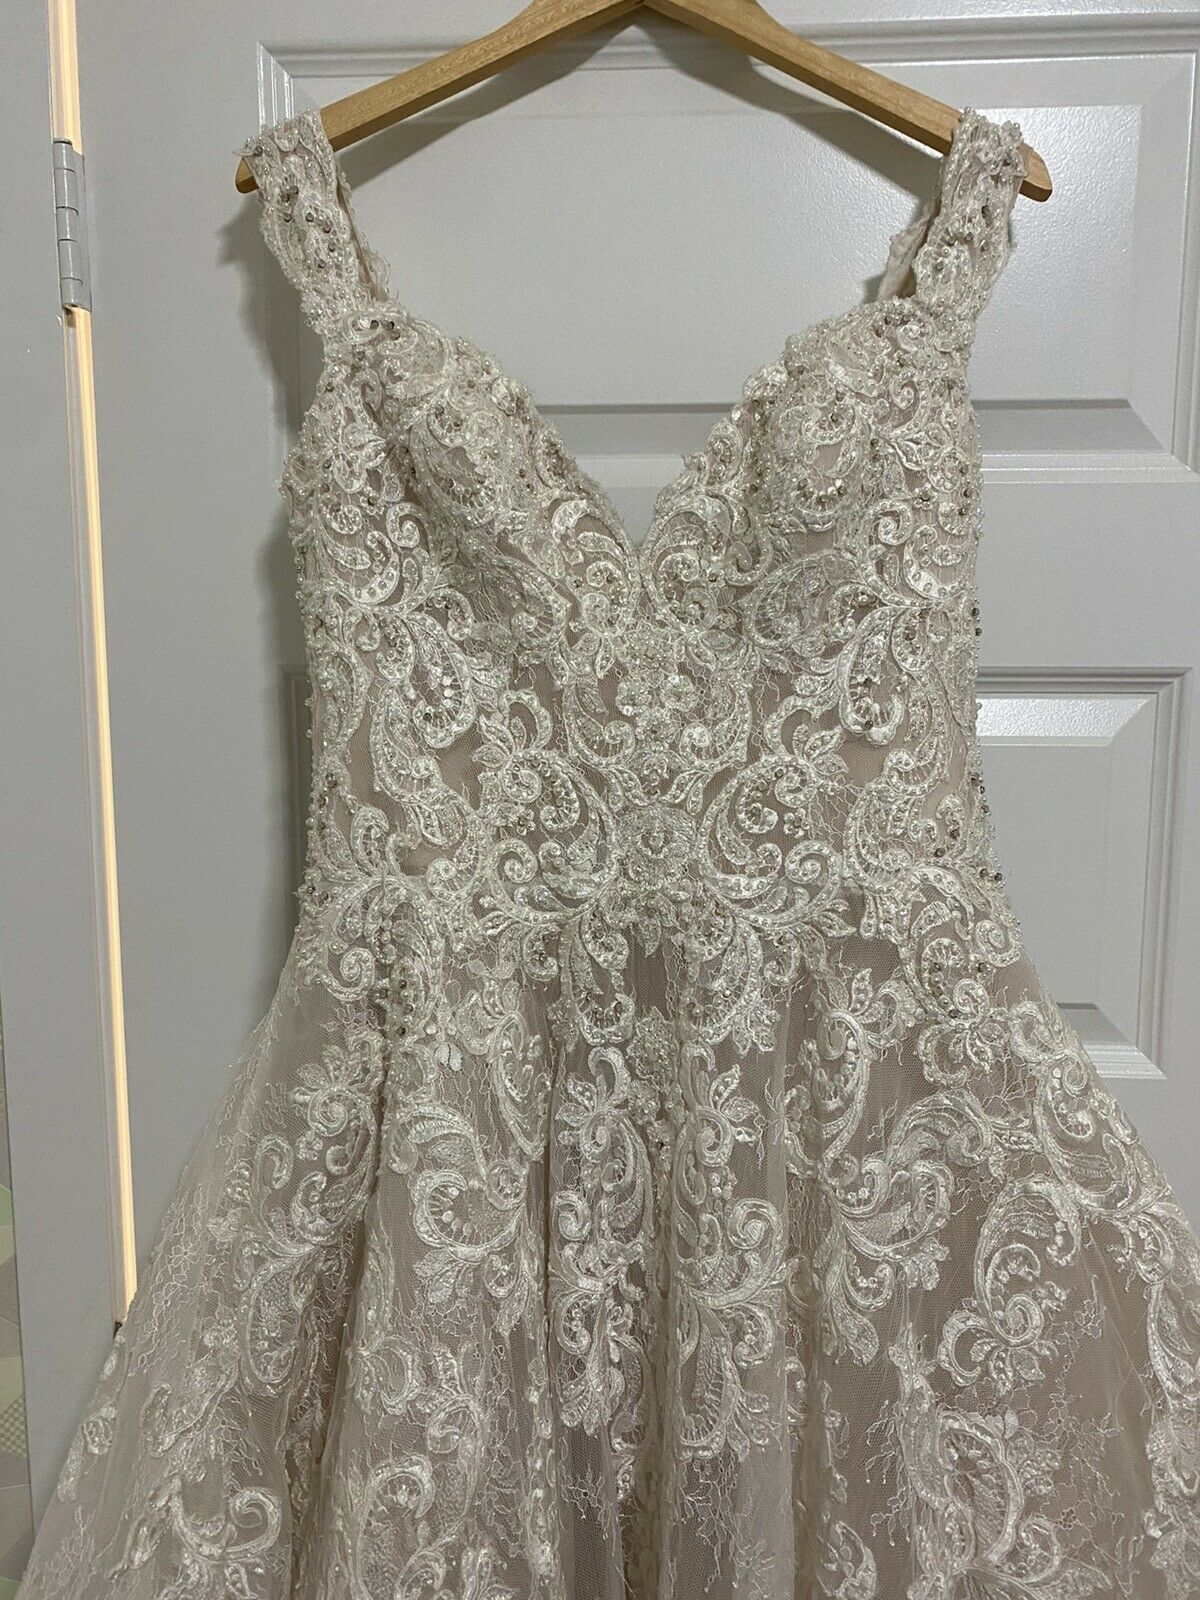 Wedding Dress Allure Couture C461 Size 10 - image 6